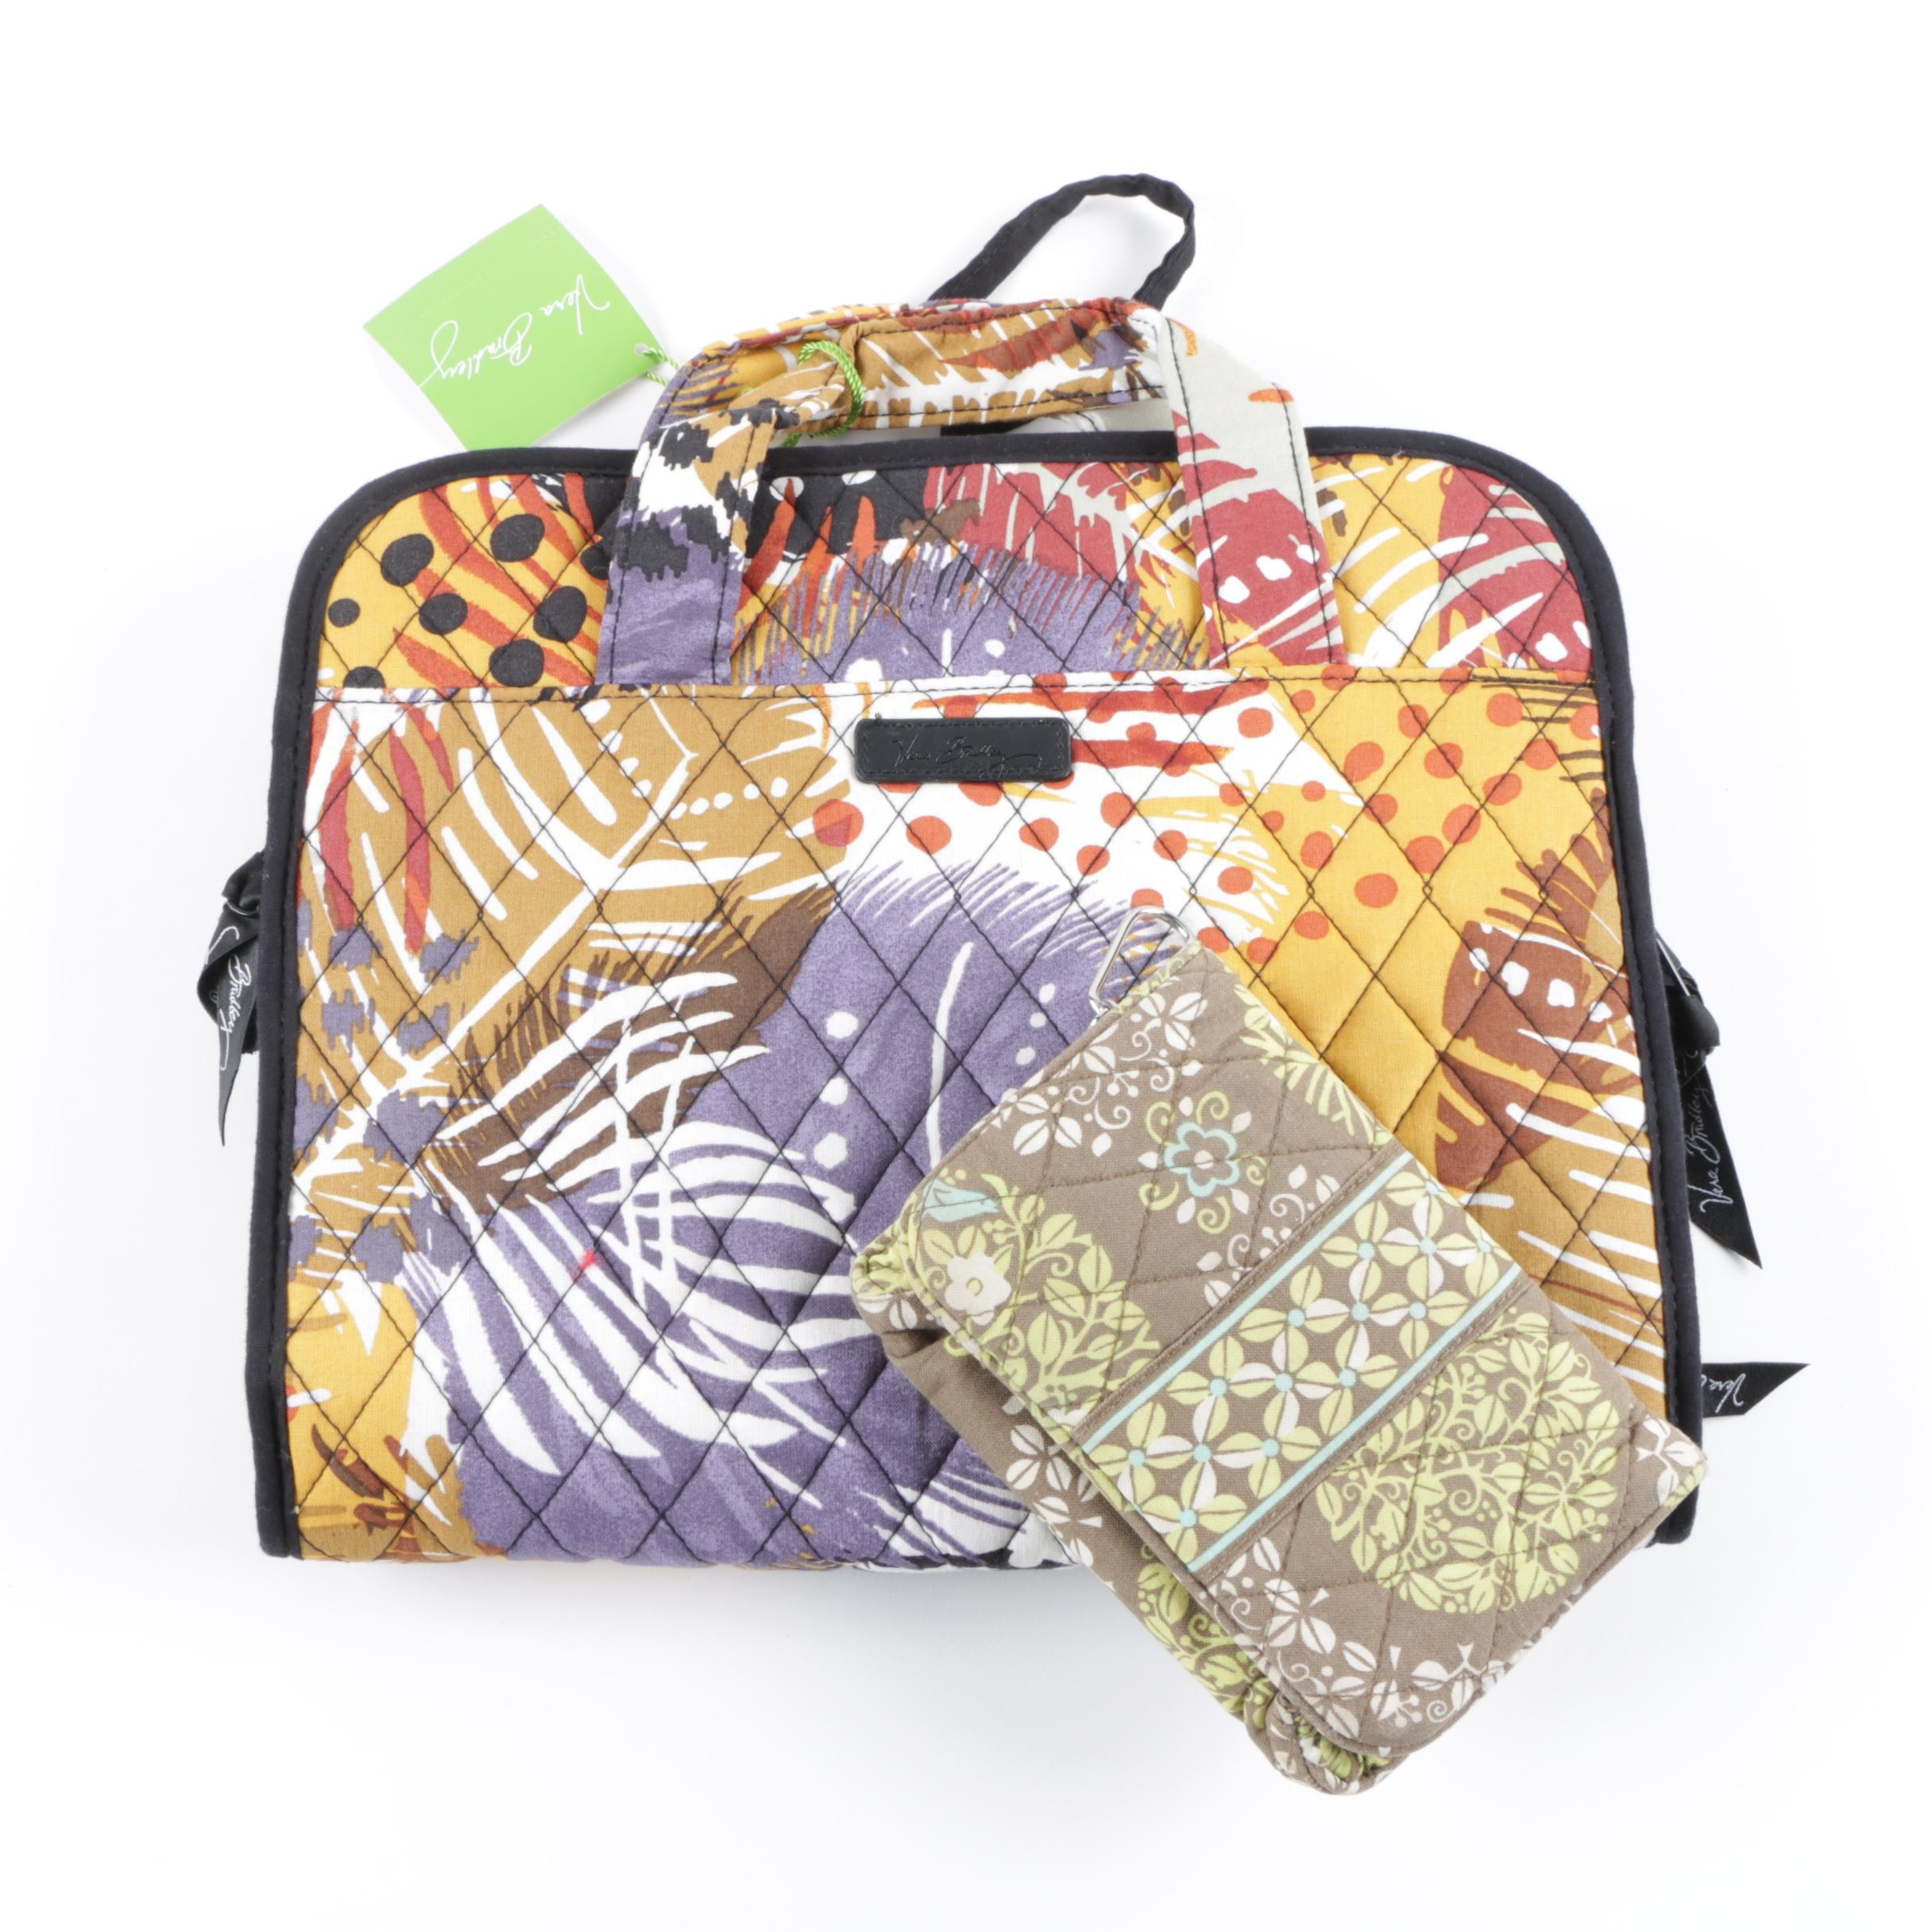 Vera Bradley Retired Patterns Hanging Cosmetic Organizer and Wallet